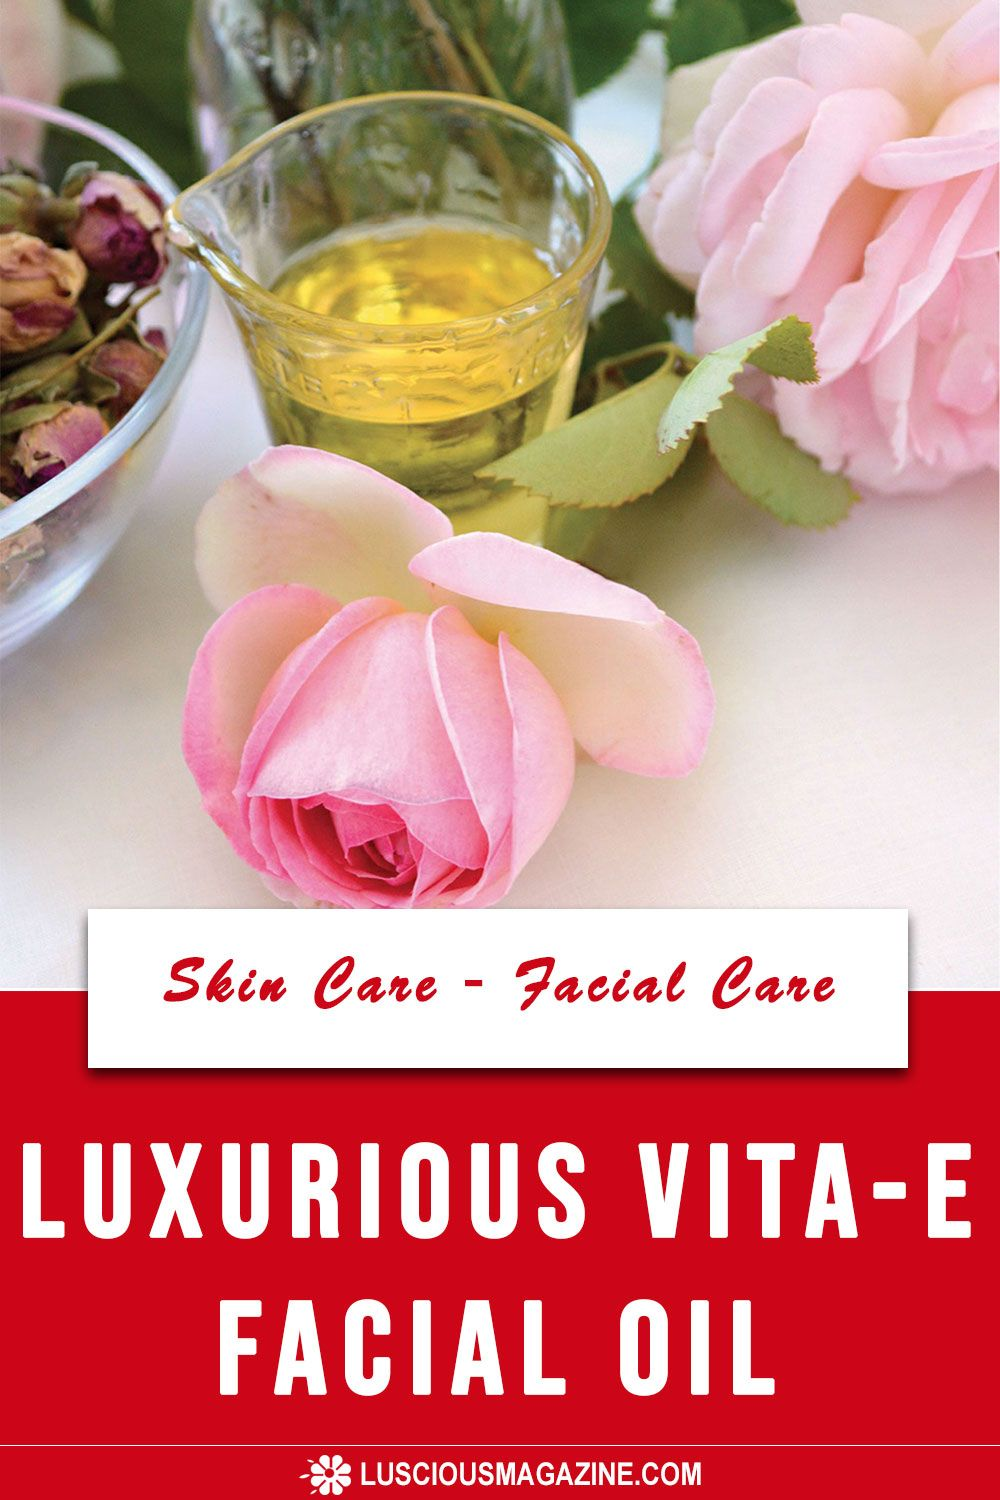 Silky and easily absorbed, this daily facial moisturizer is beneficial for all skin types, including sensitive and reactive skin. Grapeseed oil is ultra-light yet packed with nutrients and antioxidants, which give skin a regenerative boost and a healthy glow... #homeremedies #homemadeproducts #homemade #herbs #flowers #garden #backyard #health #herbal #infusedoils #skincare #beauty #homeskincare #homebeauty #homeskincare #homefacialcare #homefacialoil #skincare #facialcare #facialoil